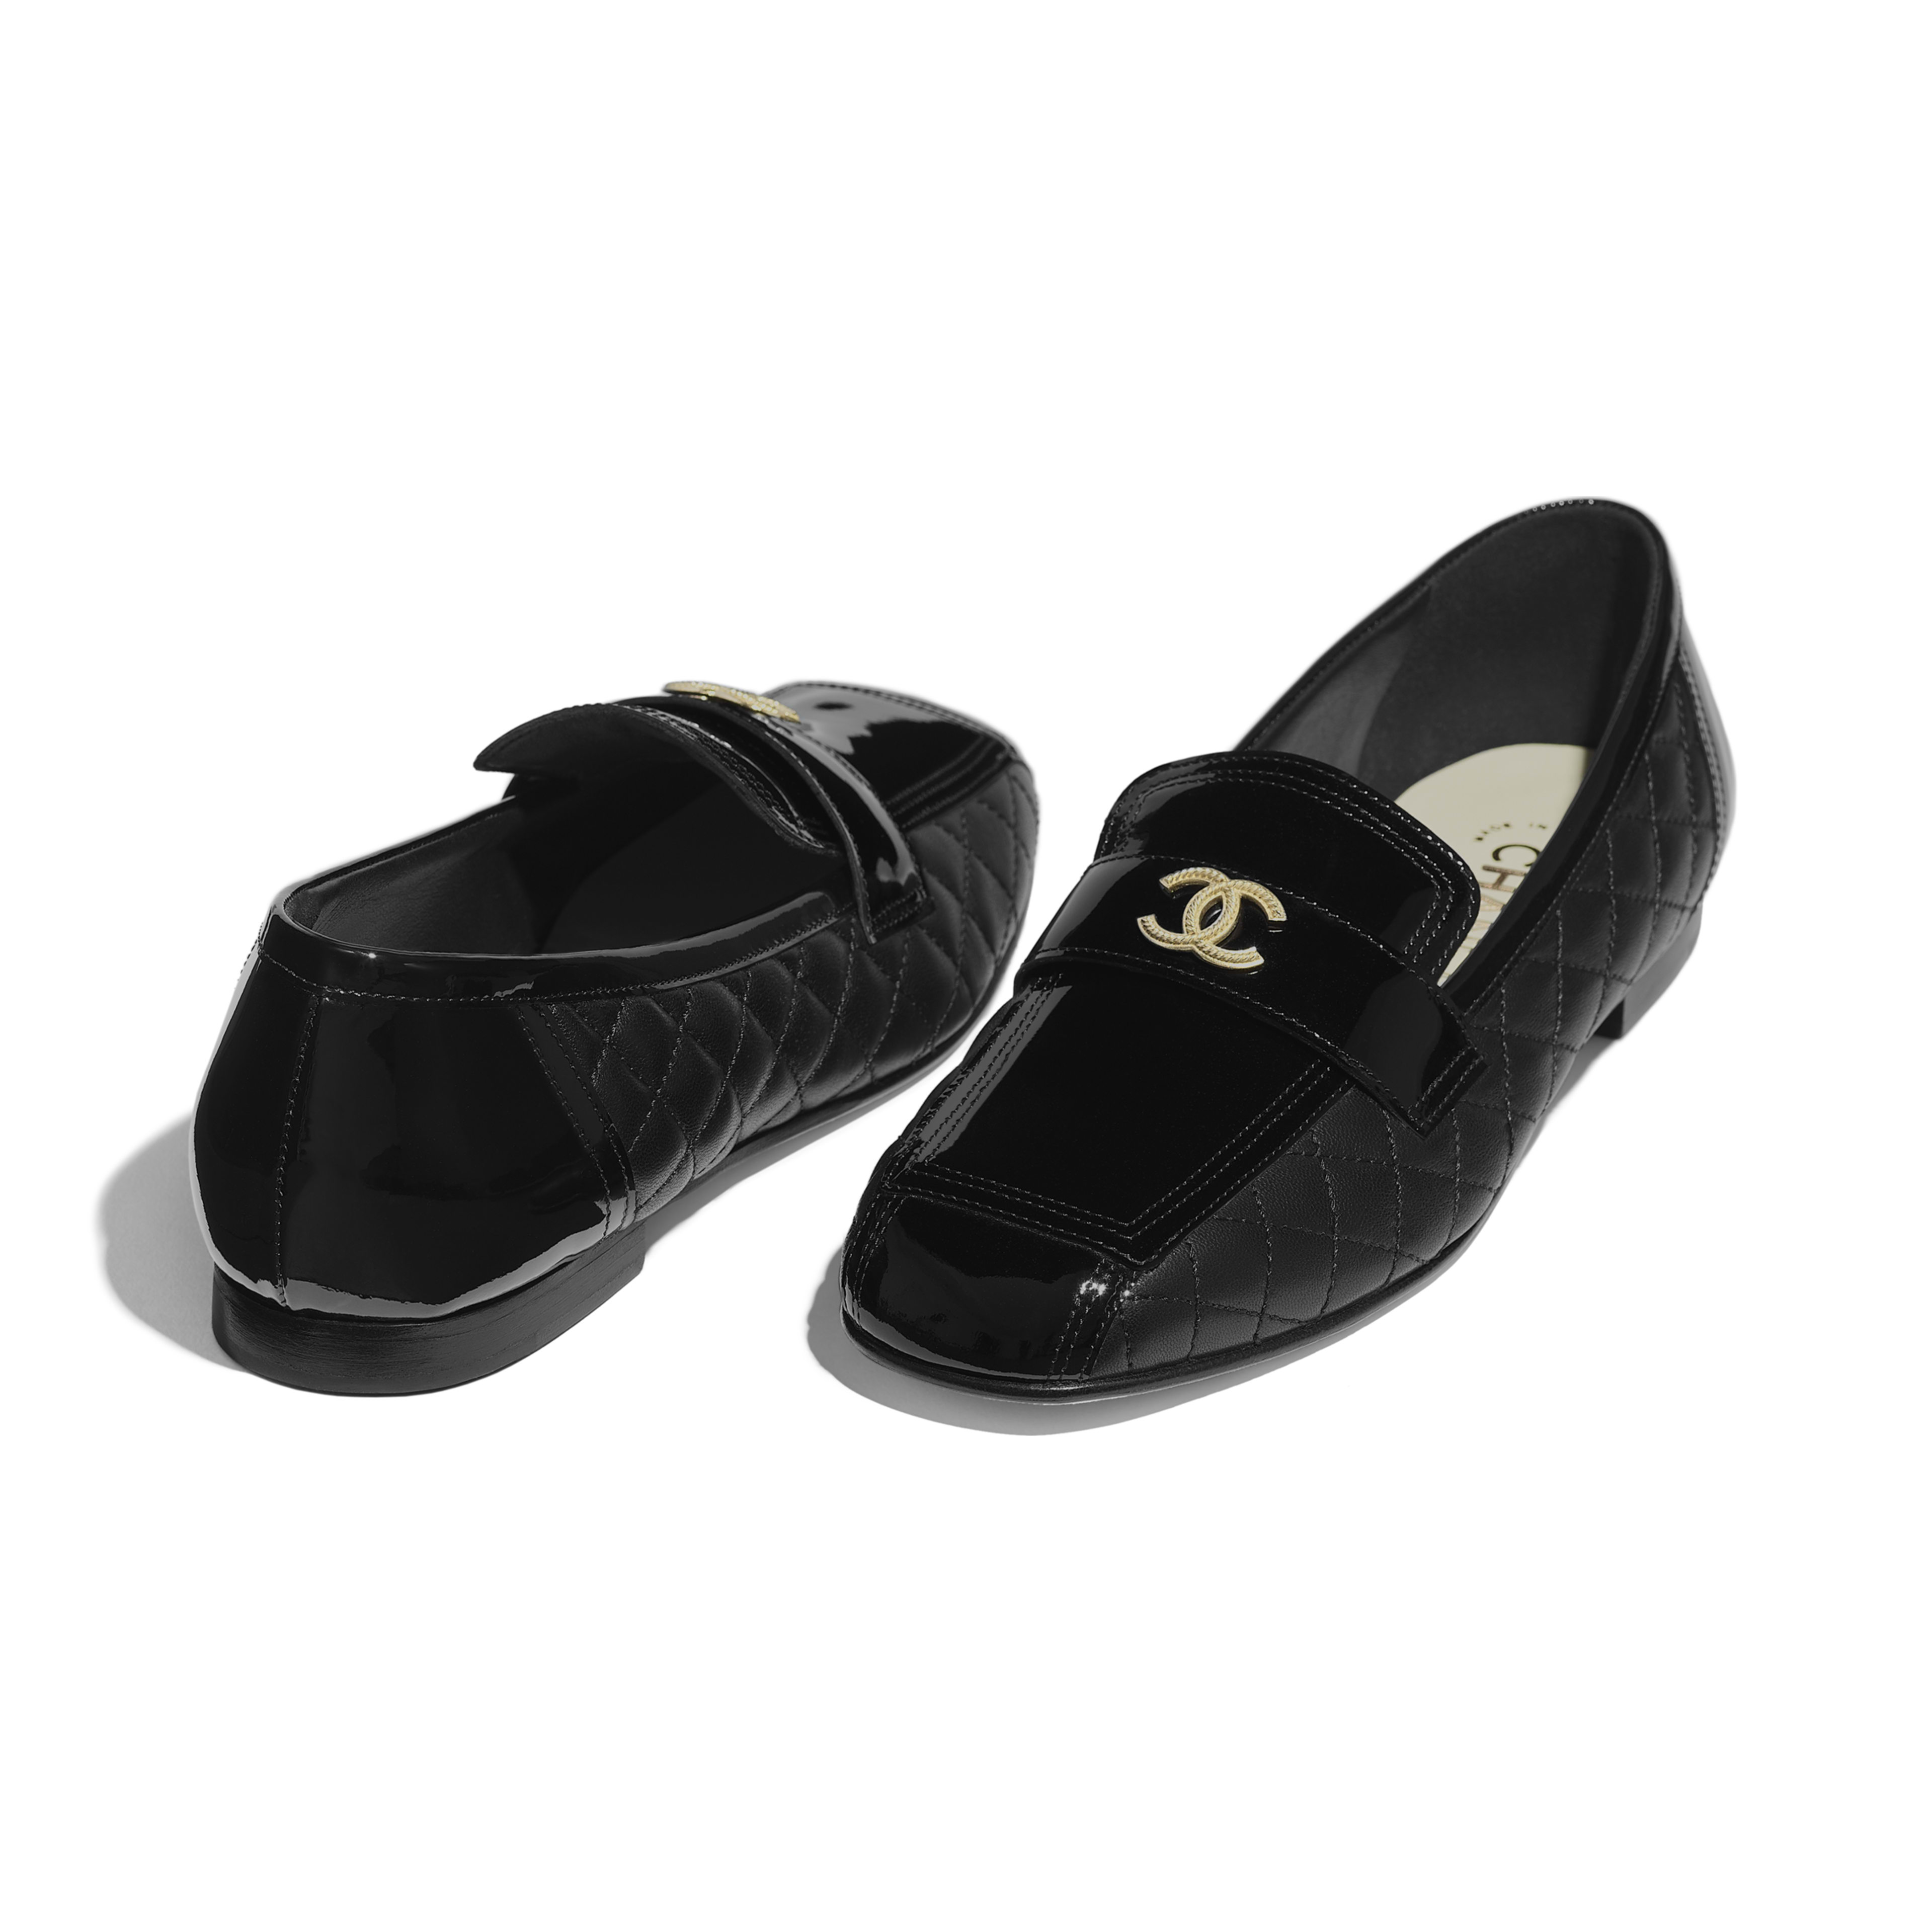 4db67b19349 Loafers - Black - Patent Calfskin   Lambskin - Other view - see full sized  version ...